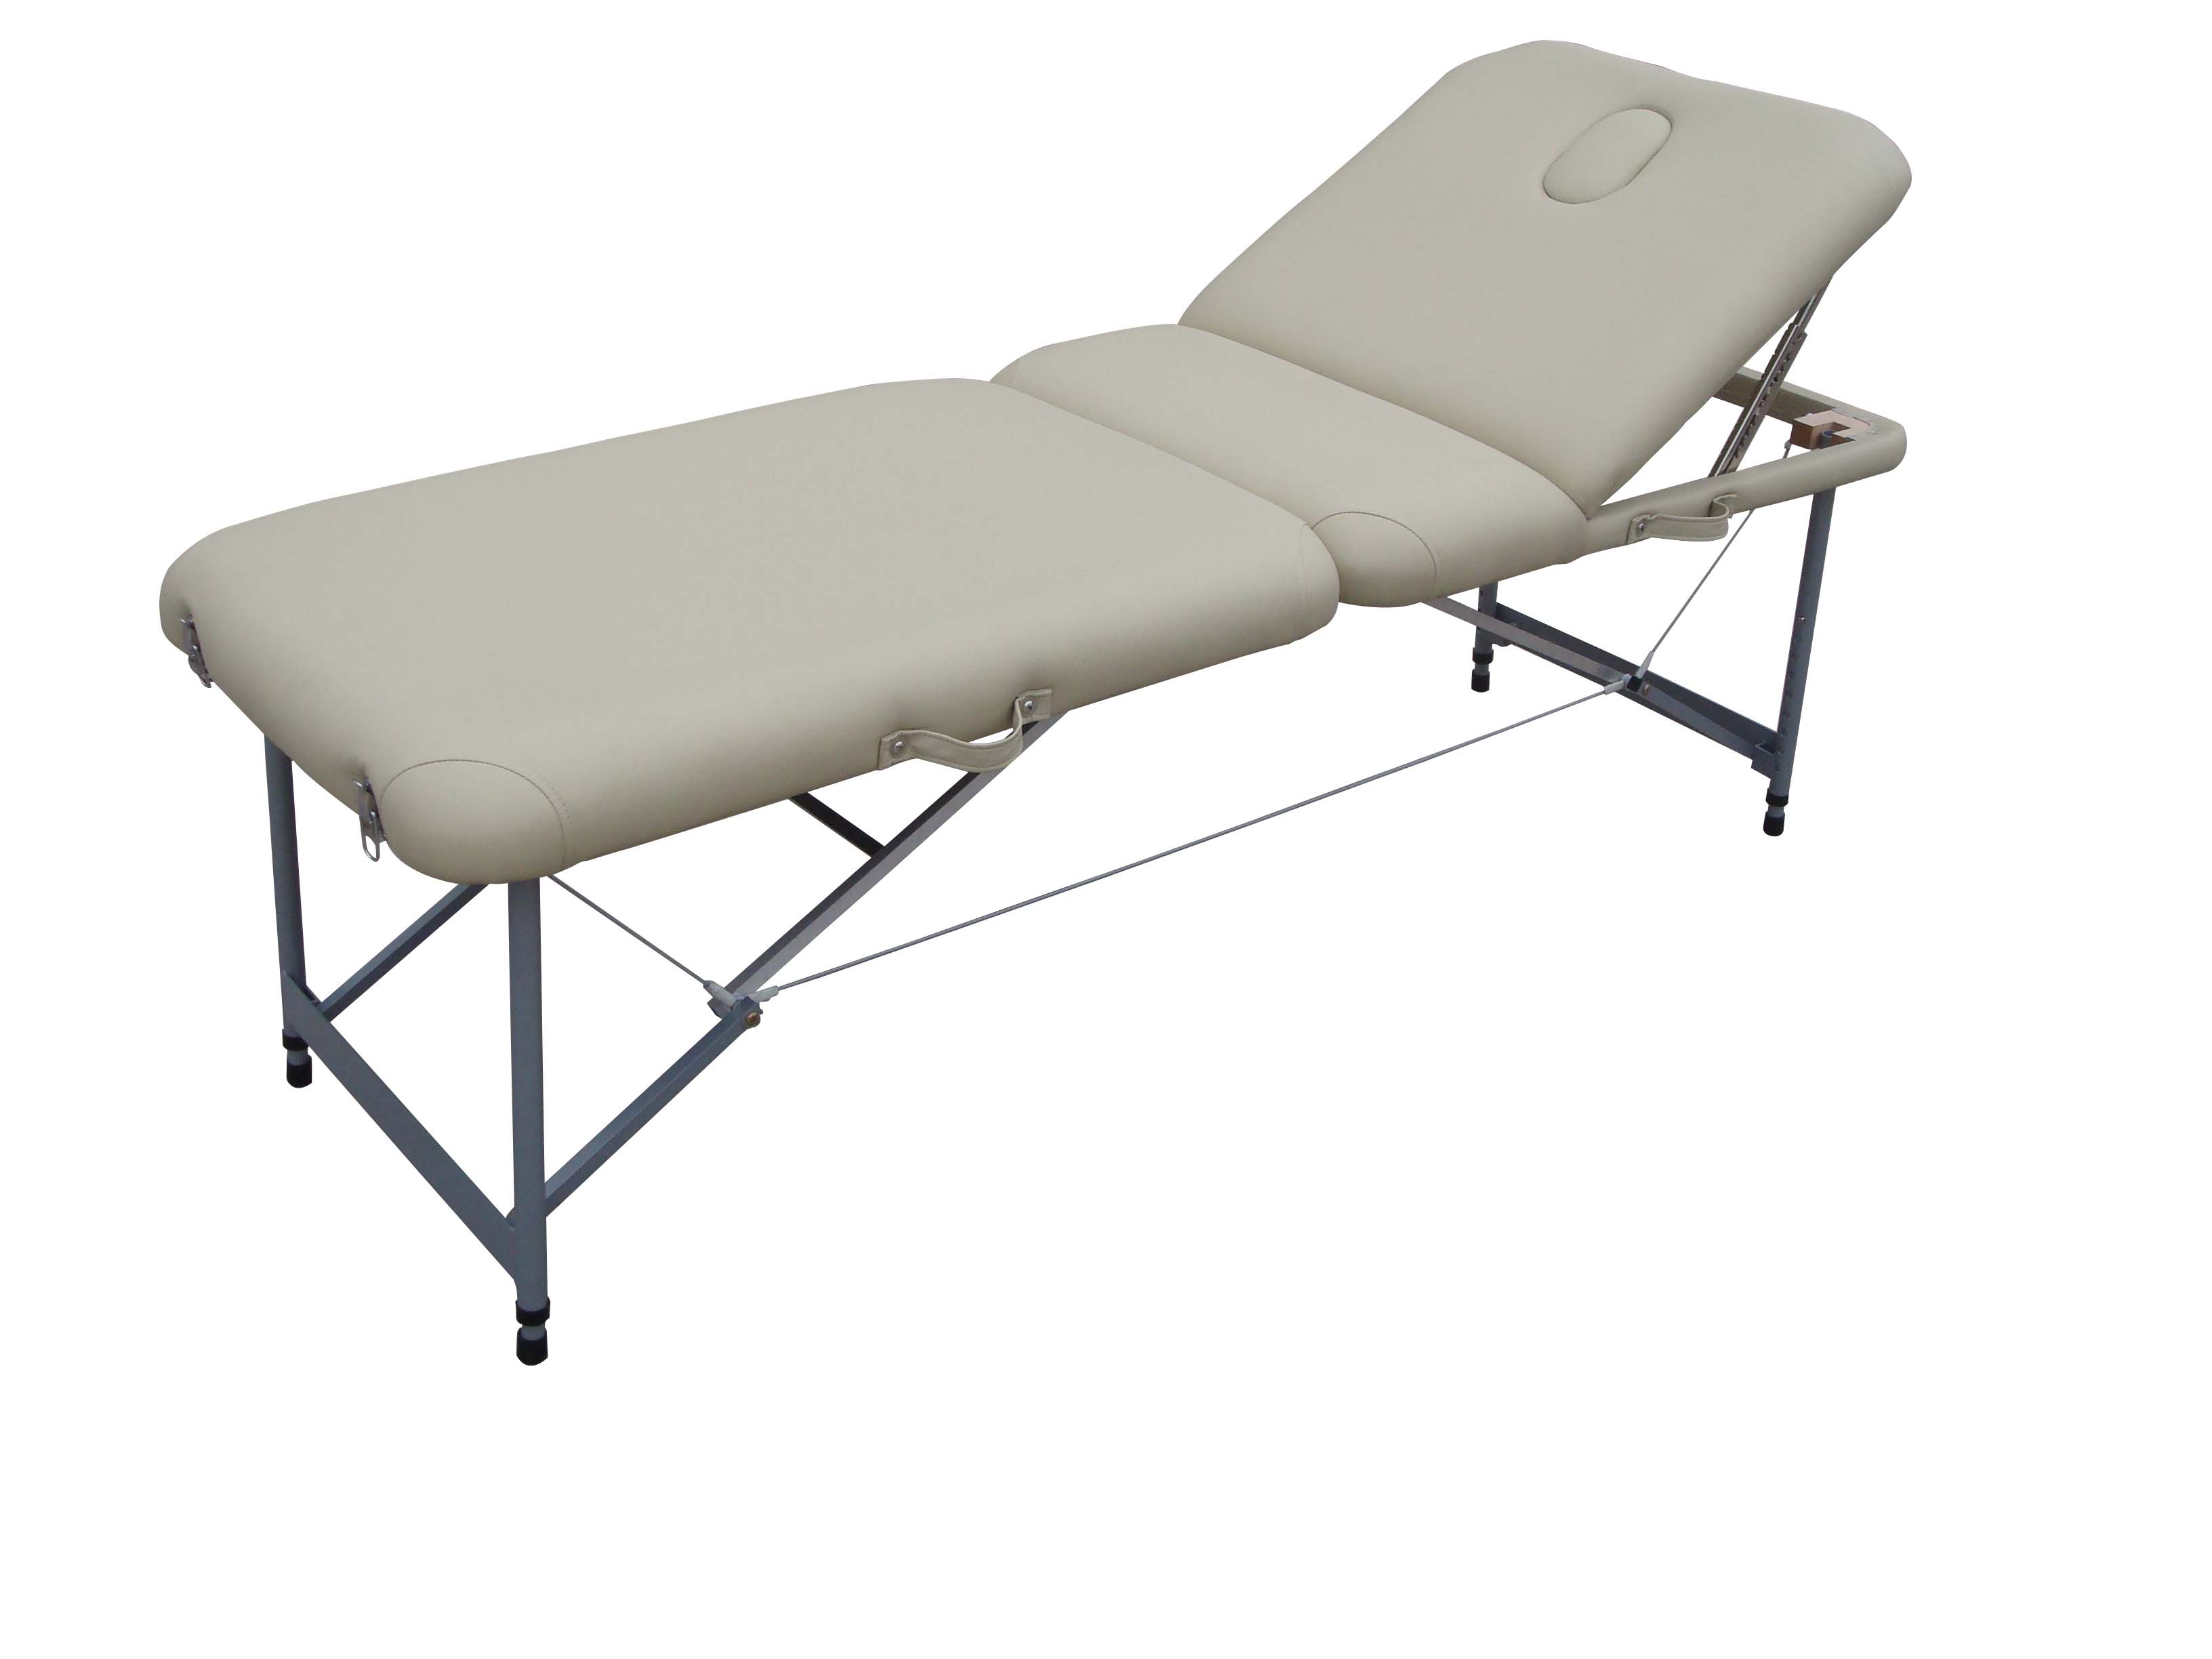 buy table canada portable p strength inner massage htm online element